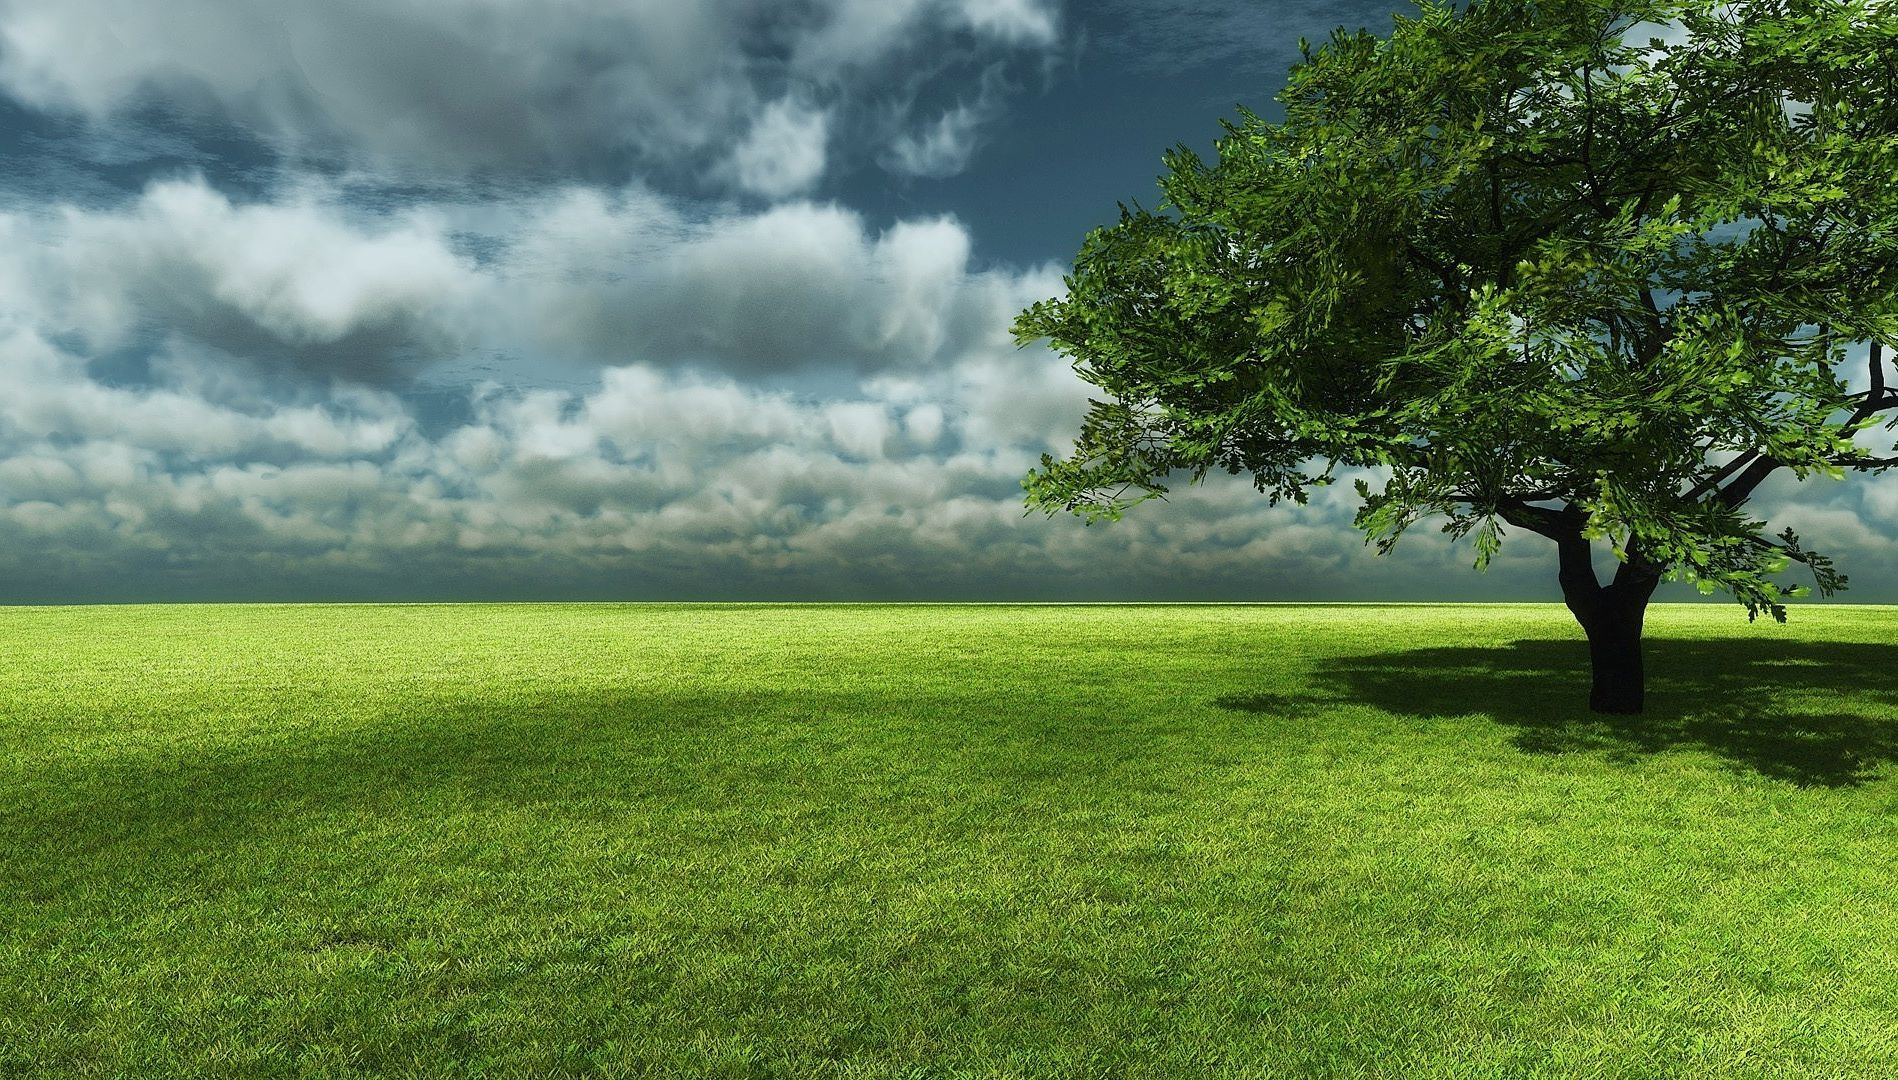 Big Tree With Grass Field Landscape Wallpaper Wallpaper